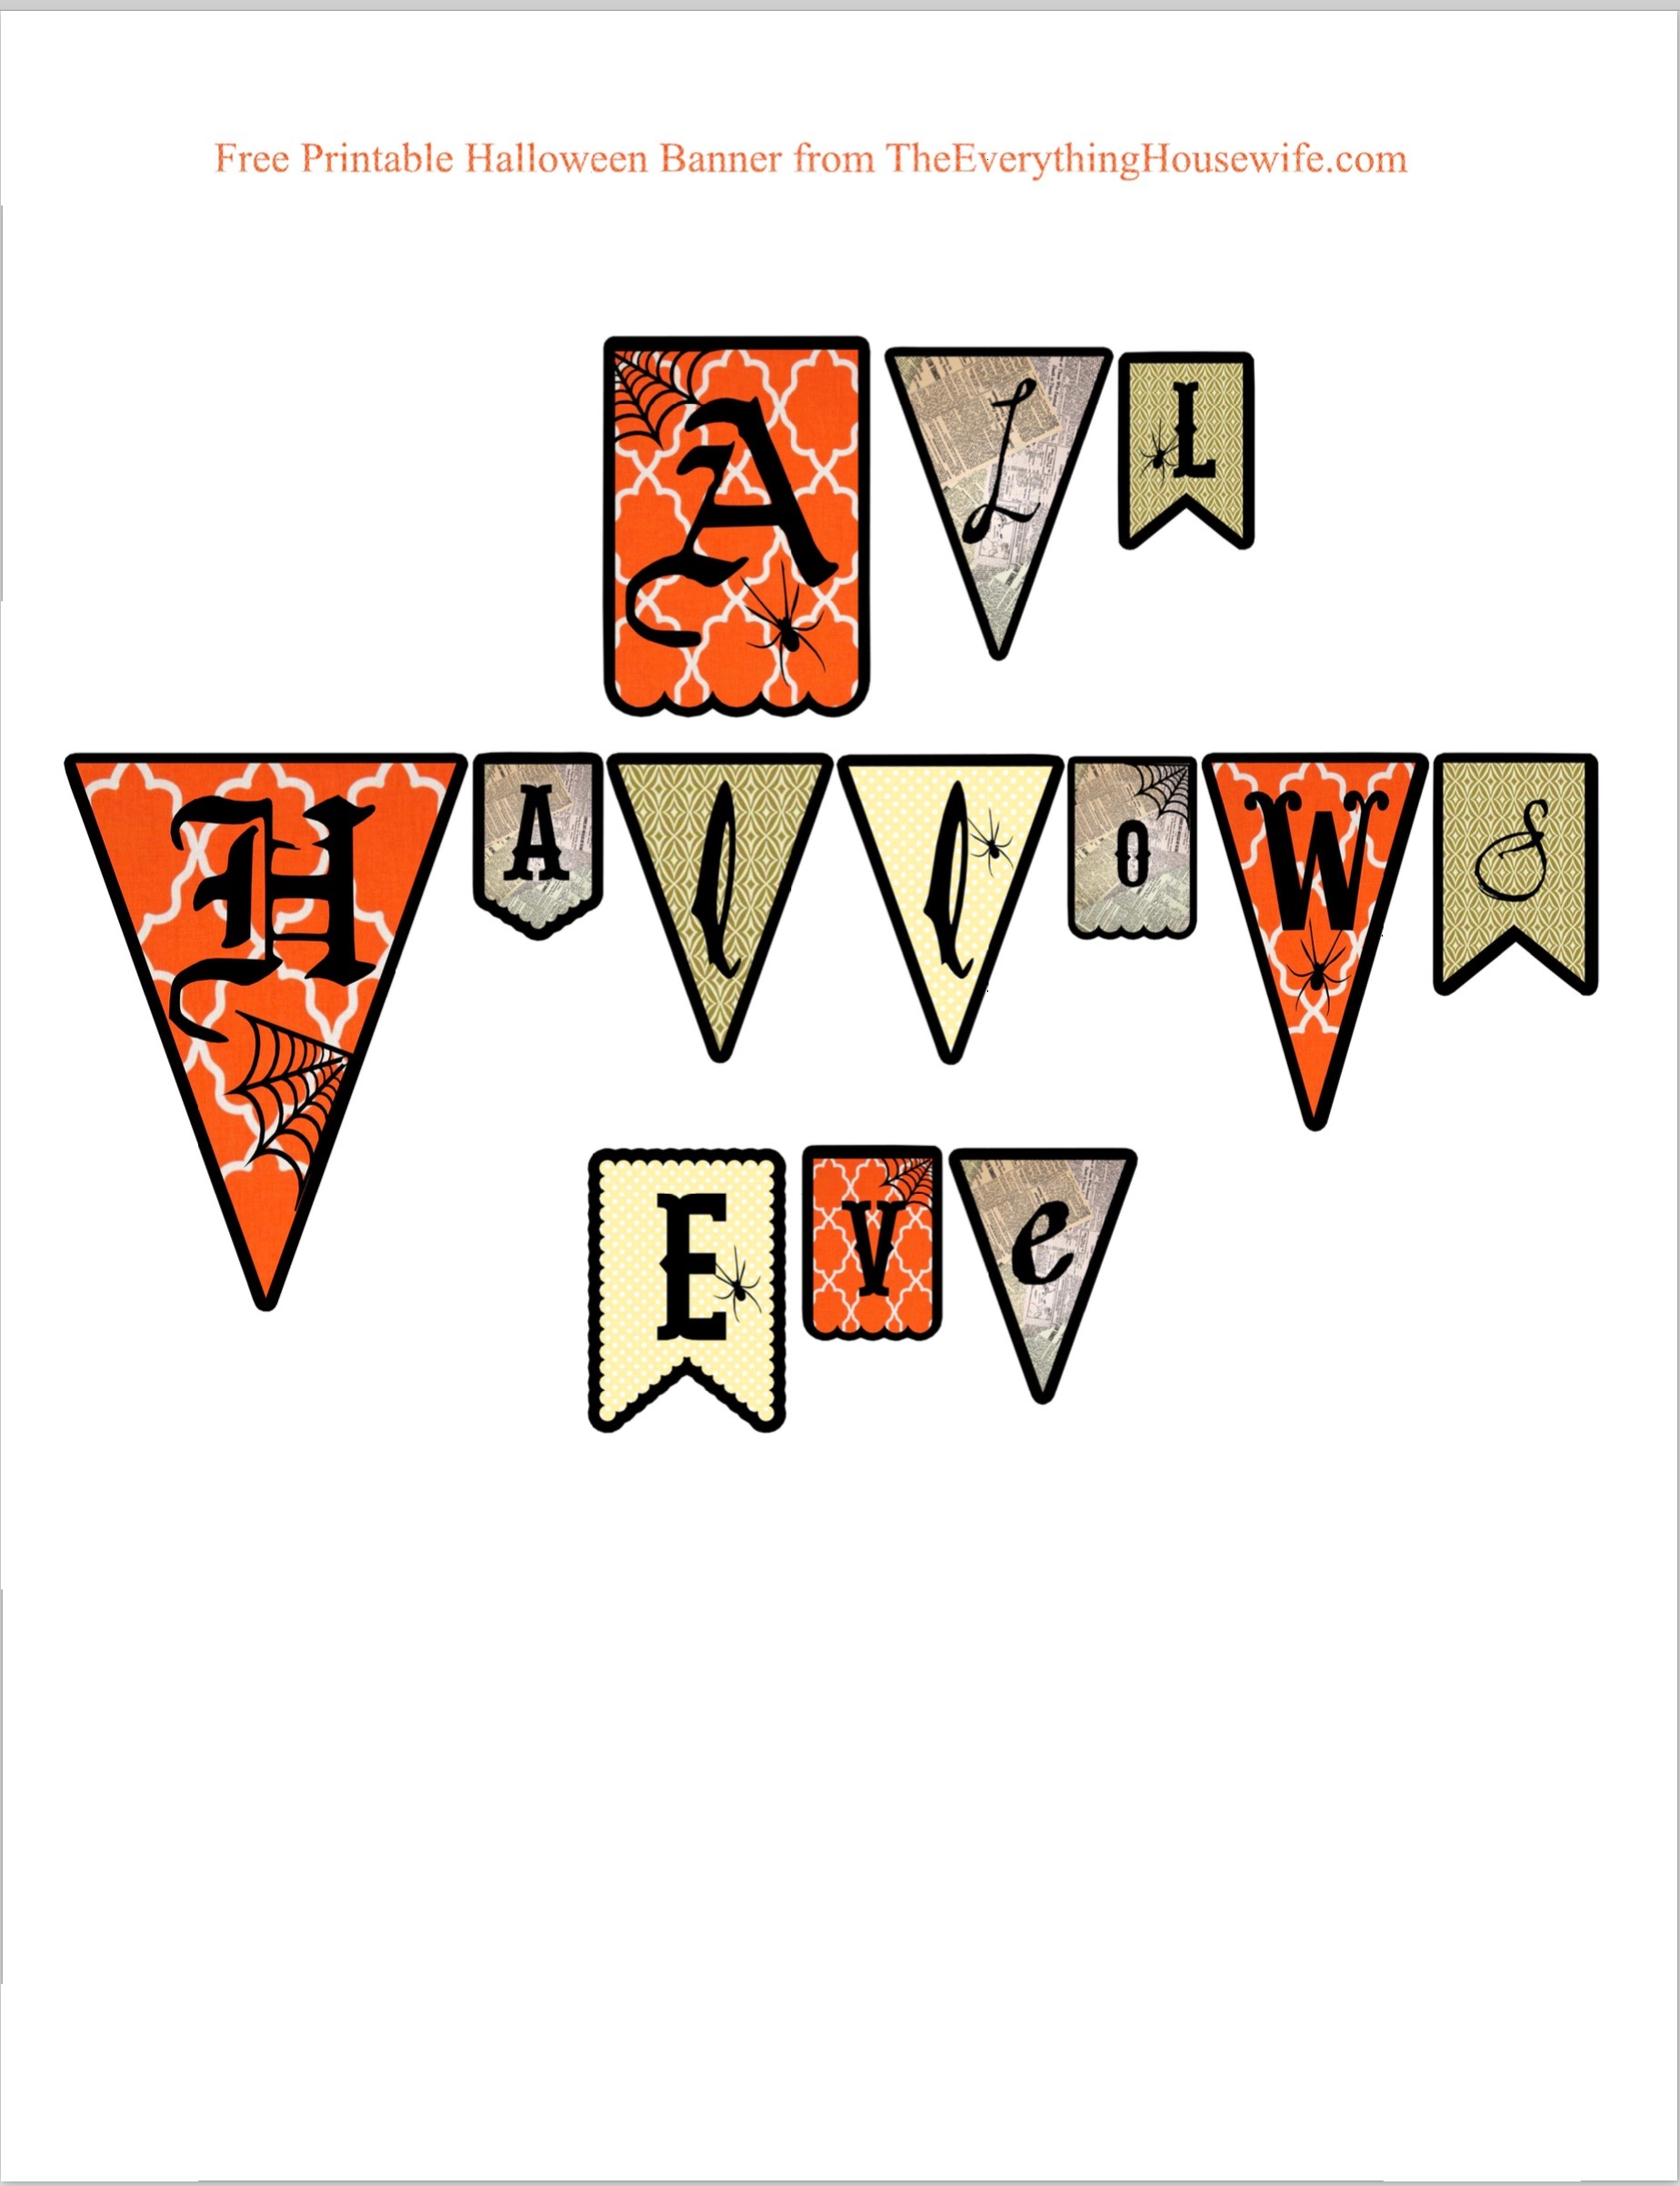 image regarding Free Printable Halloween Banner named Totally free Printable All Hallows Eve Banner - the every little thing housewife